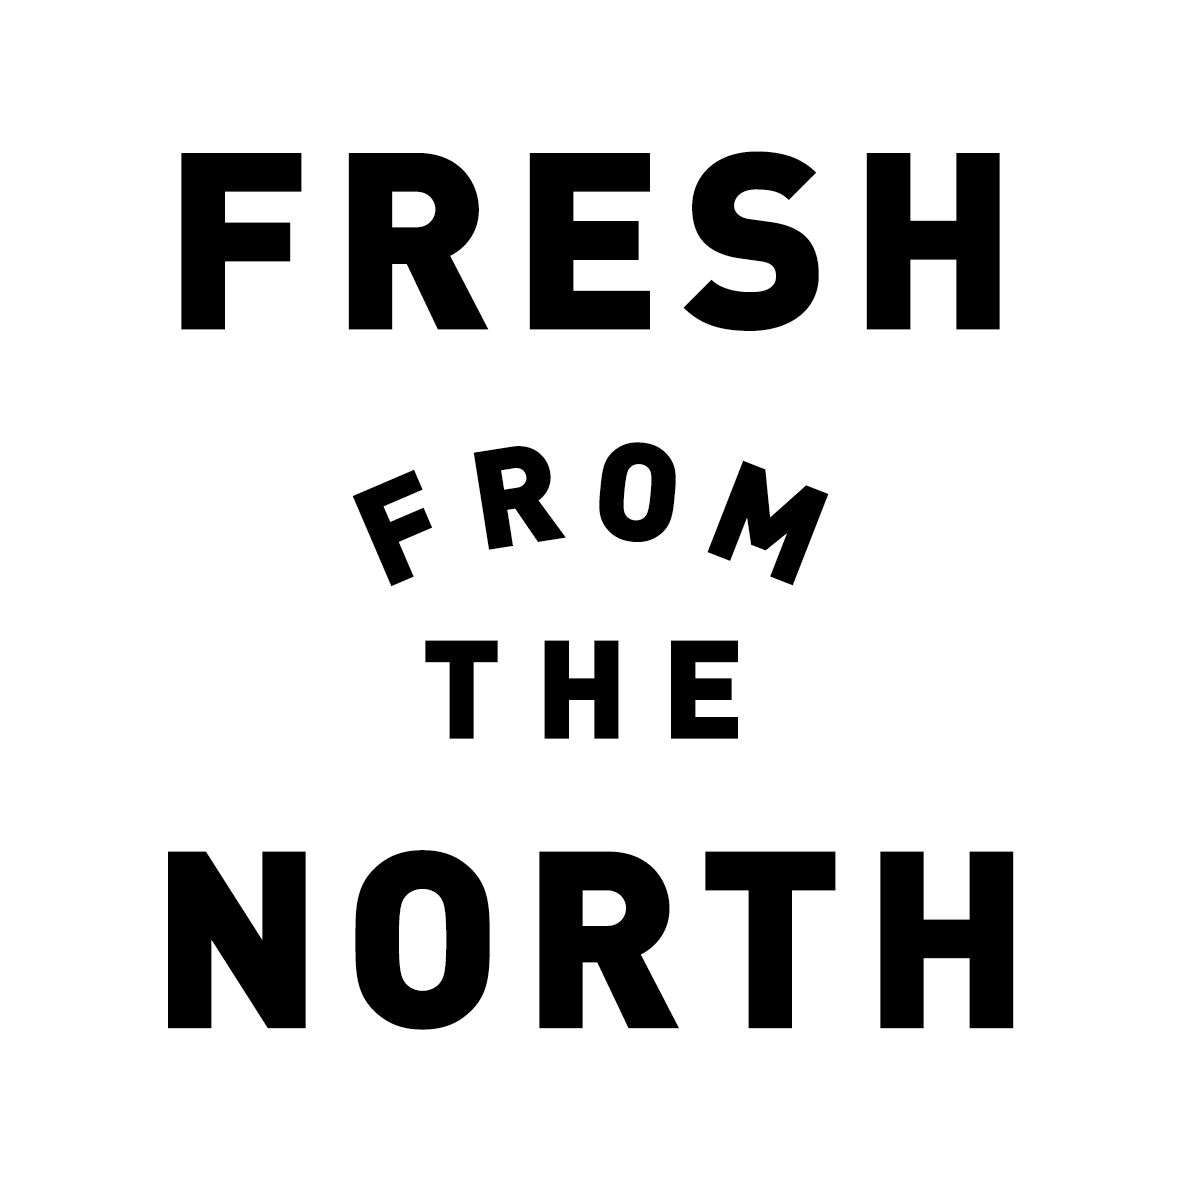 Northern Monk Brewing Co